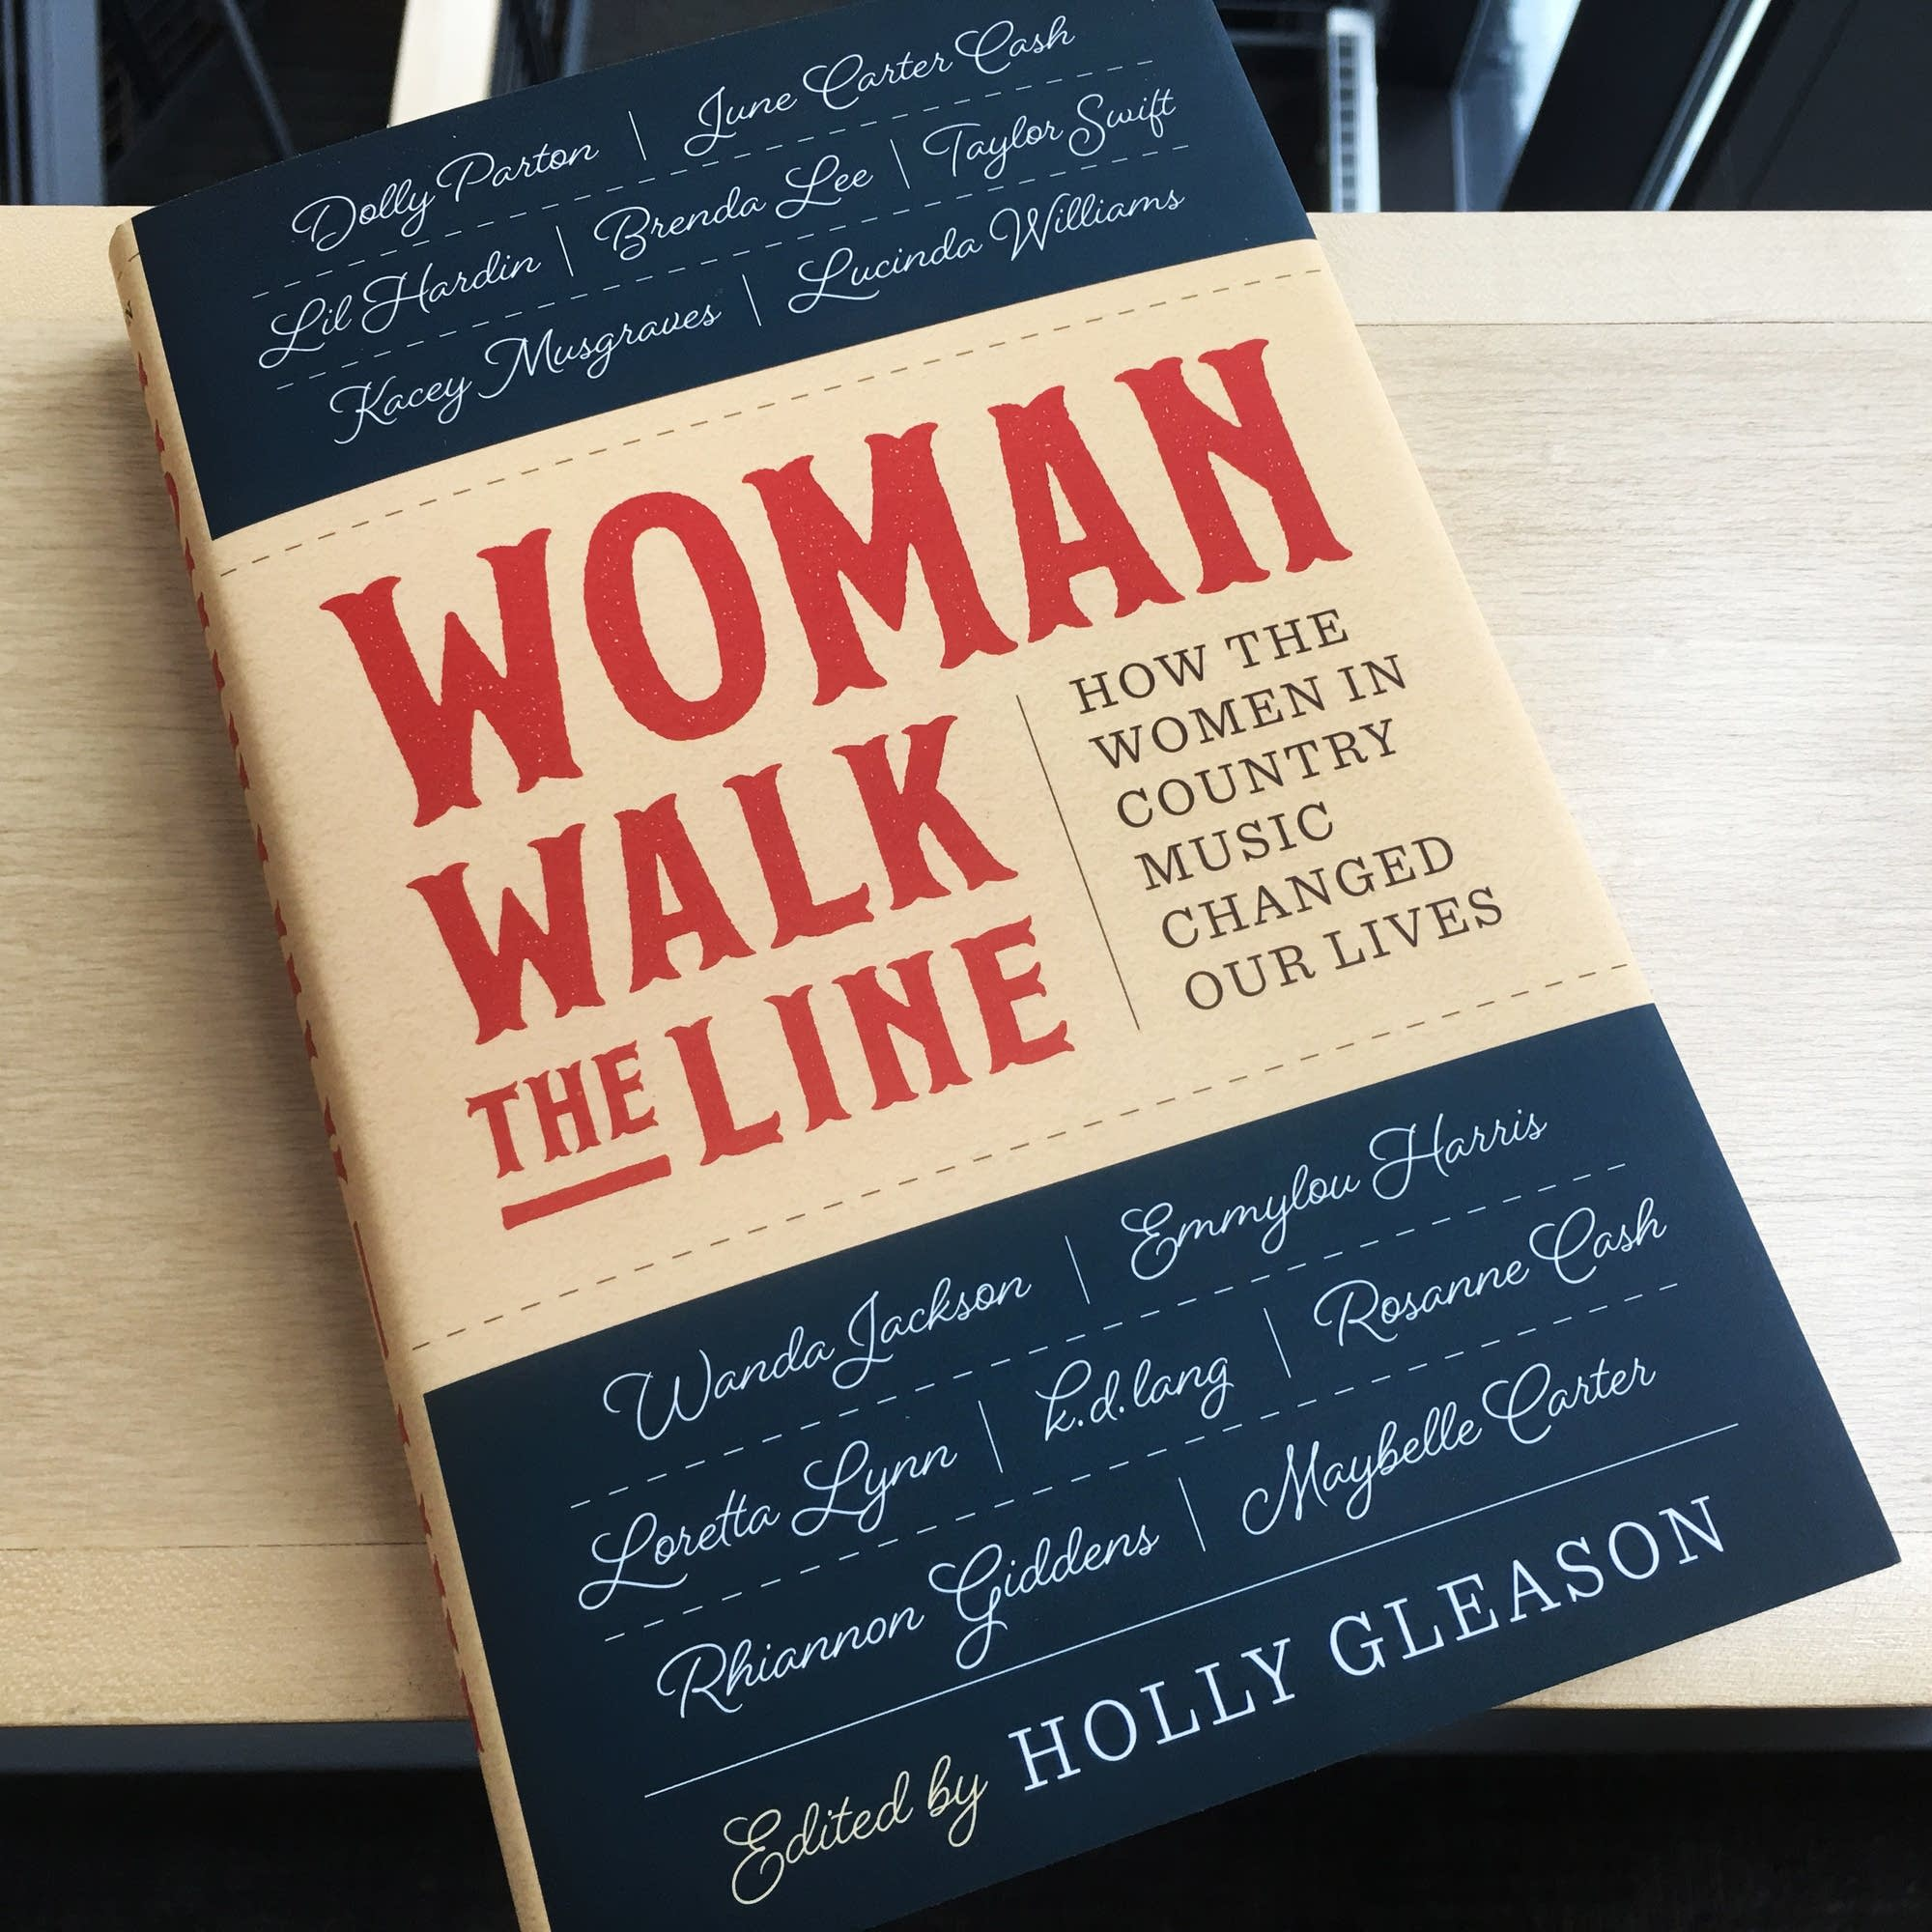 'Woman Walk the Line: How the Women in Country Music Changed Our Lives.'